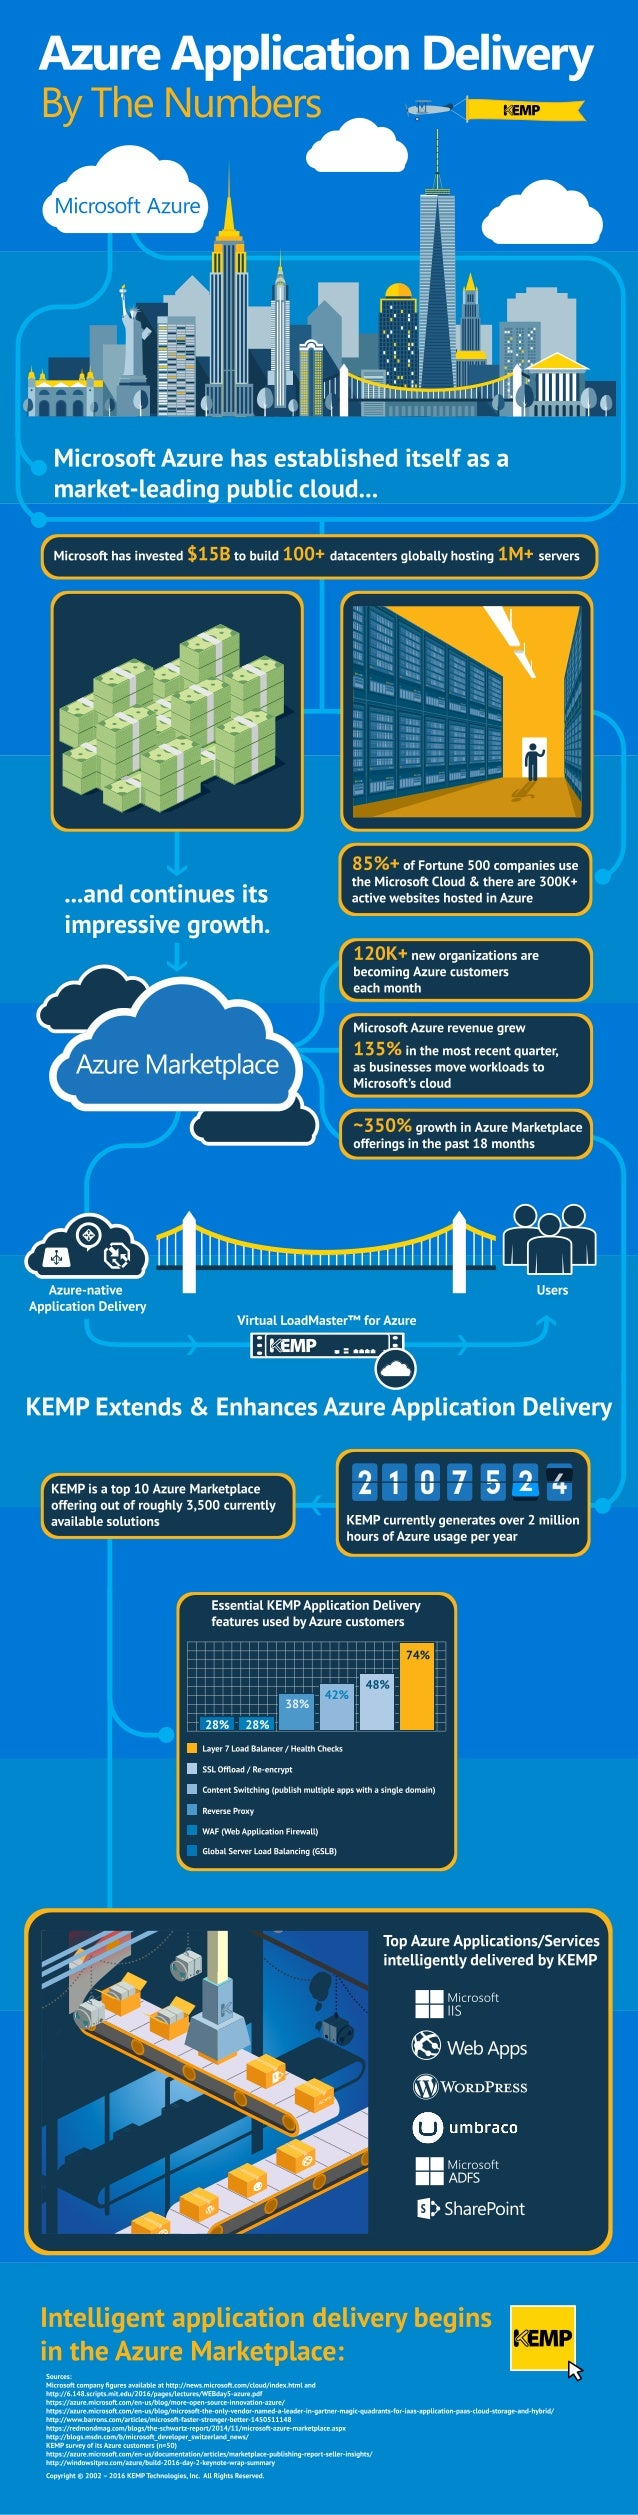 Azure Application Delivery by the Numbers